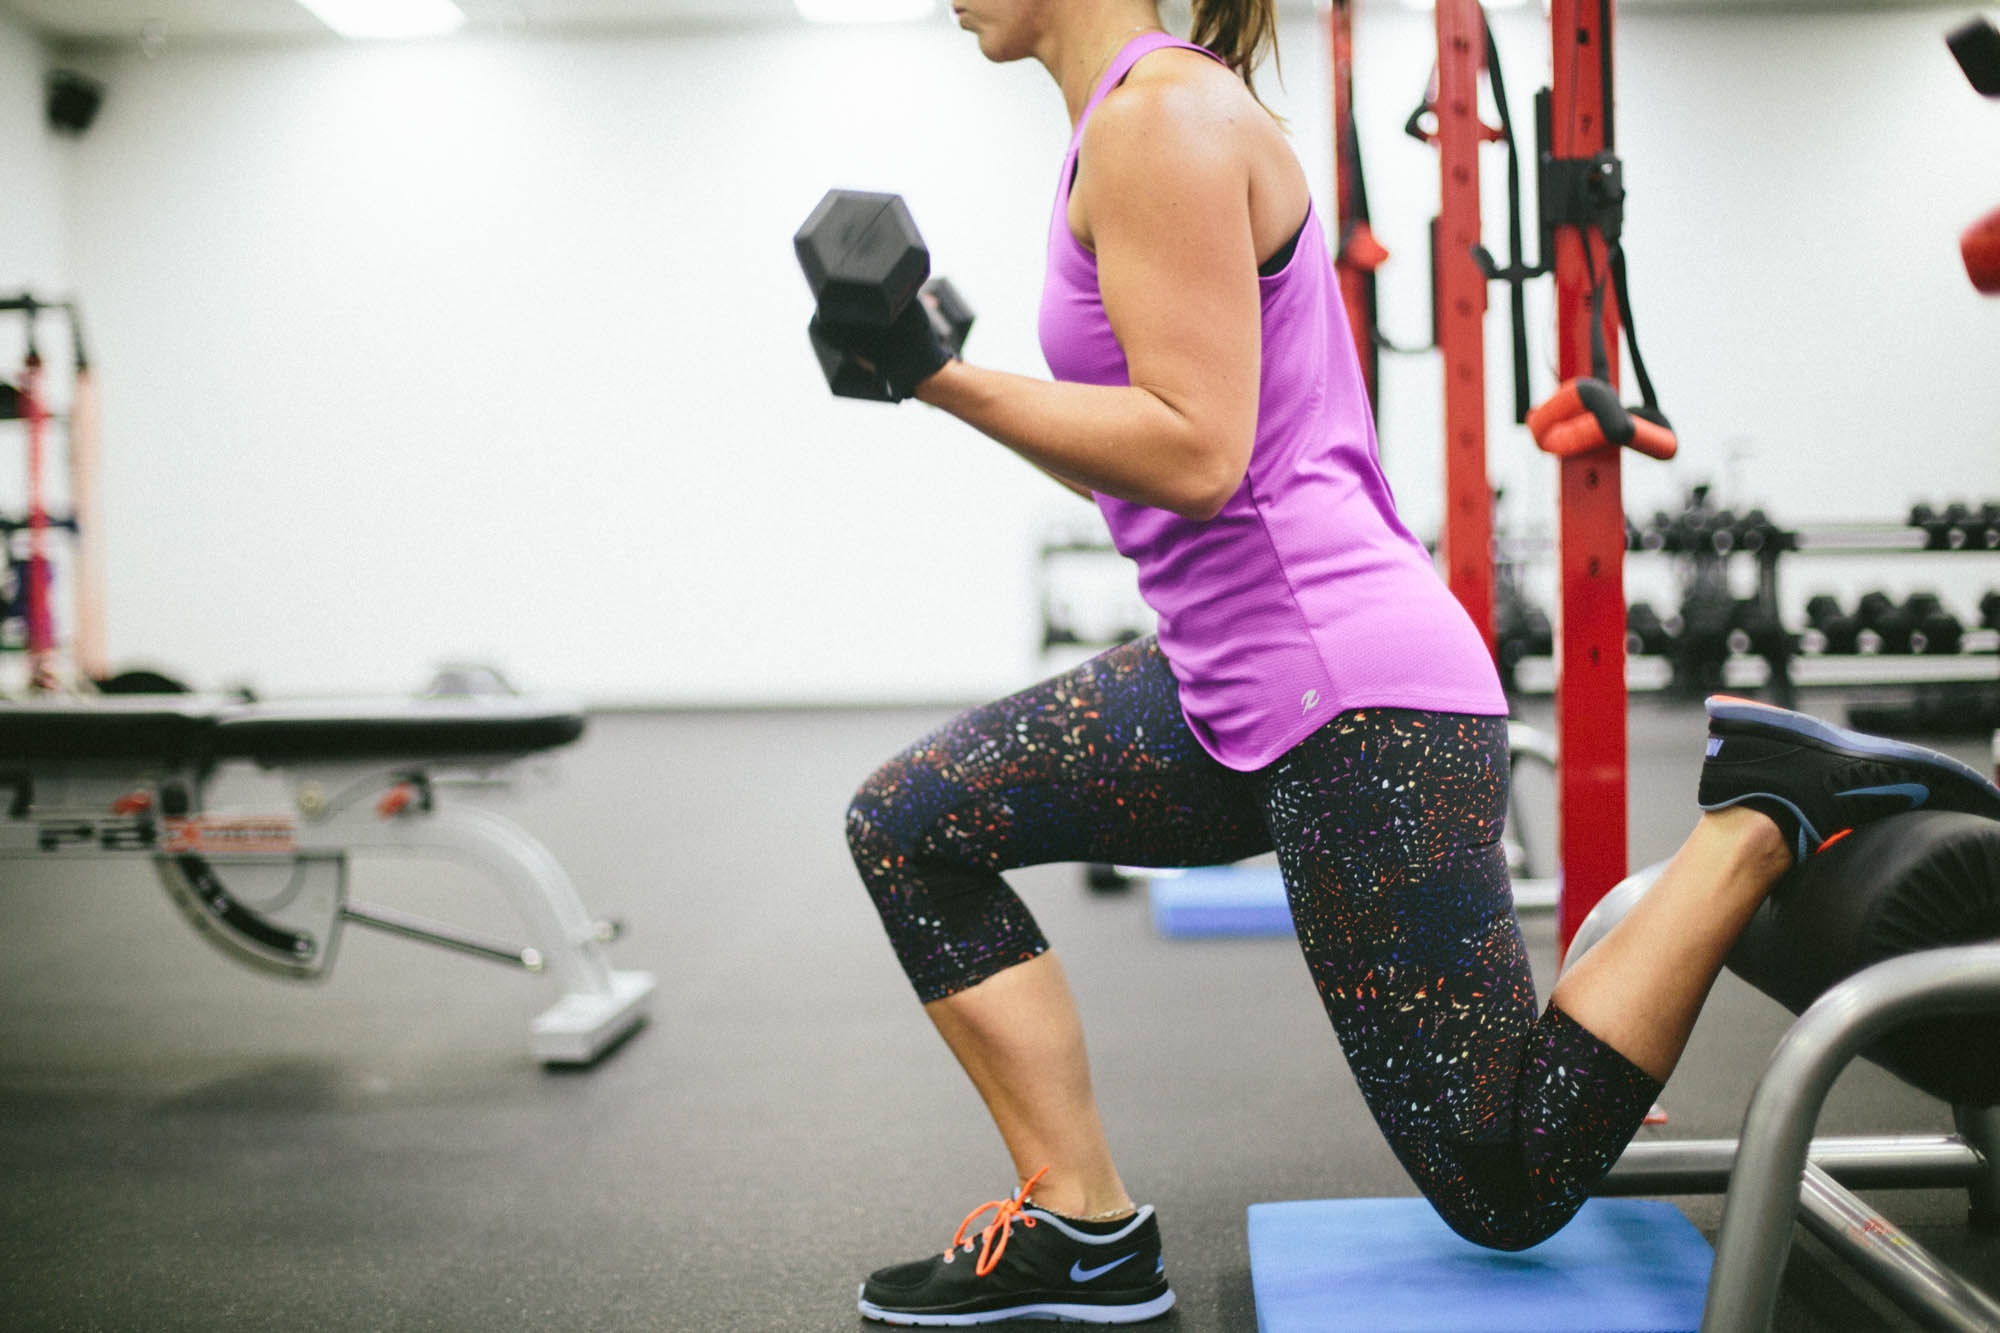 $349 - Enjoy our high intensity Bootcamp-style workouts for 3 months for just $349 + tax! Get lean and toned this summer.This special is for new or returning clients only. Unlimited training for June, July and August 2018.